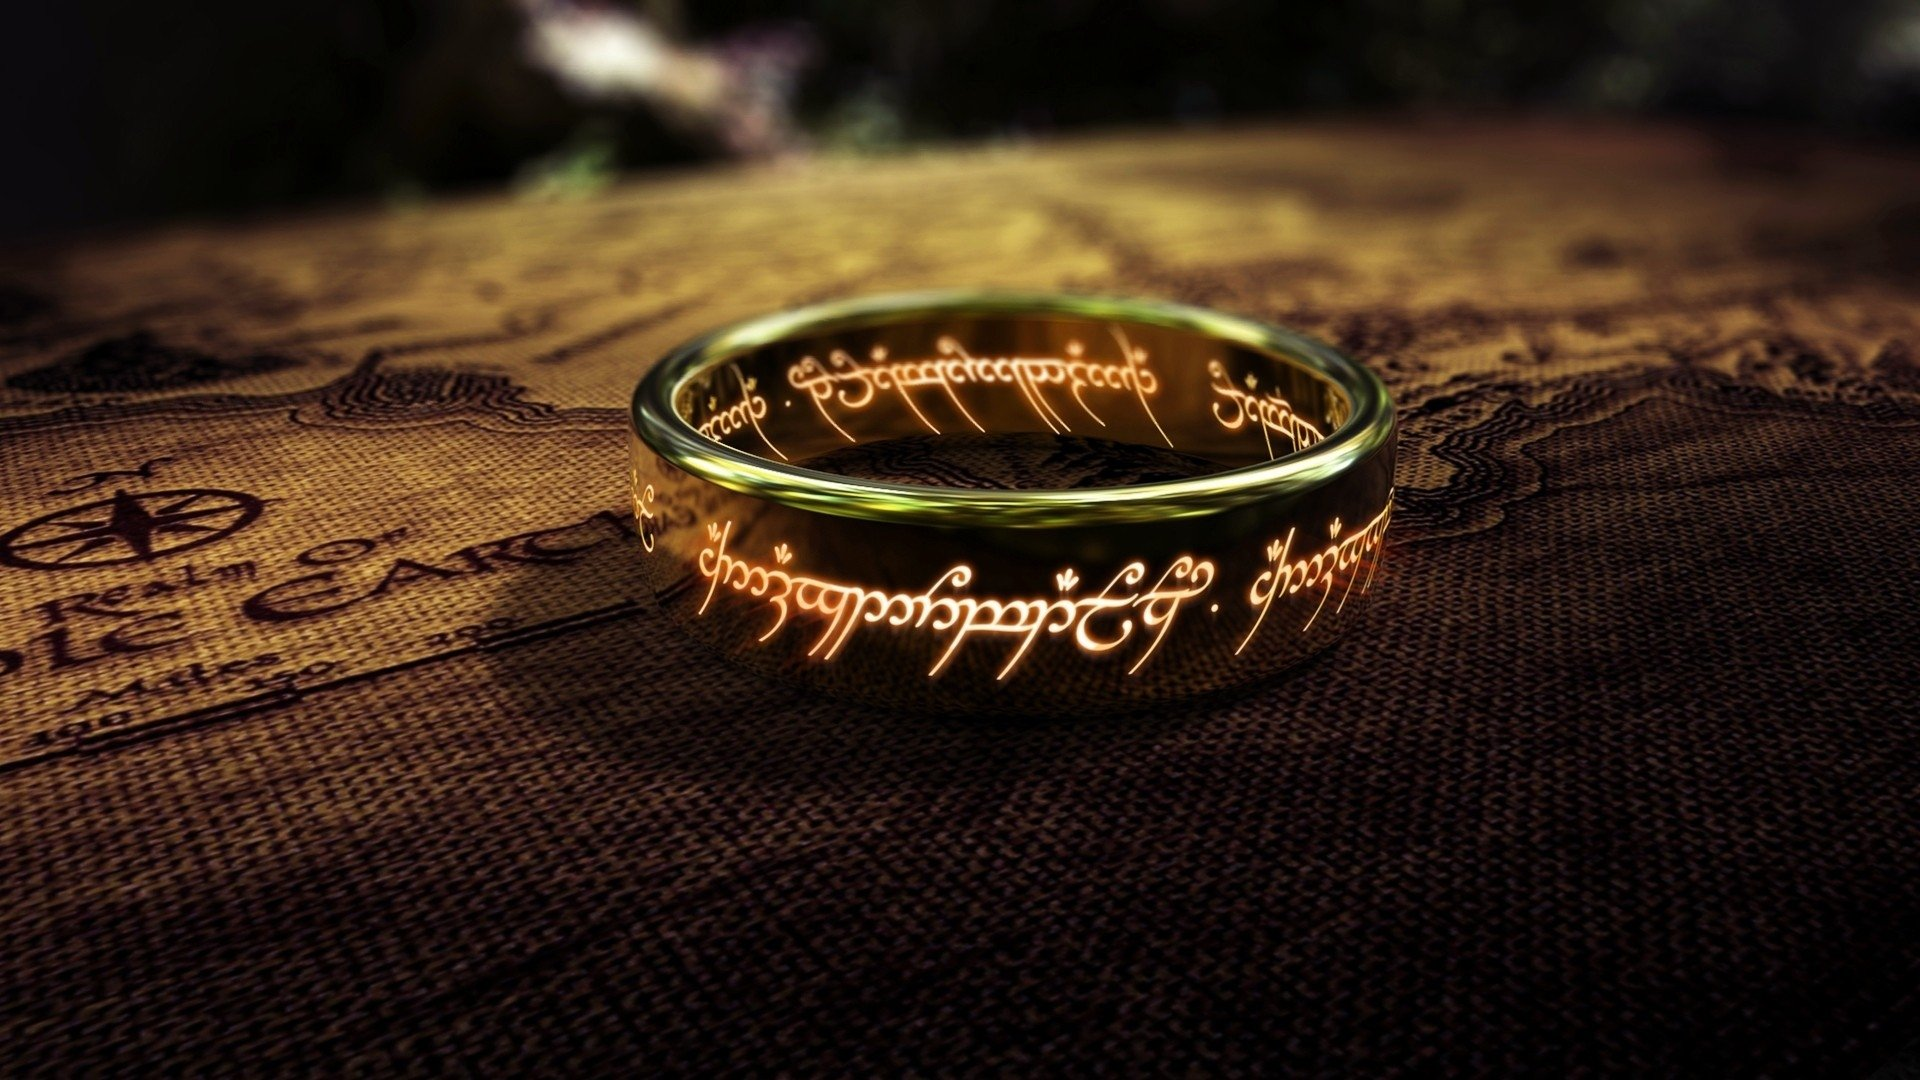 ring Full HD Wallpaper and Hintergrund 1920x1080 ID:462581